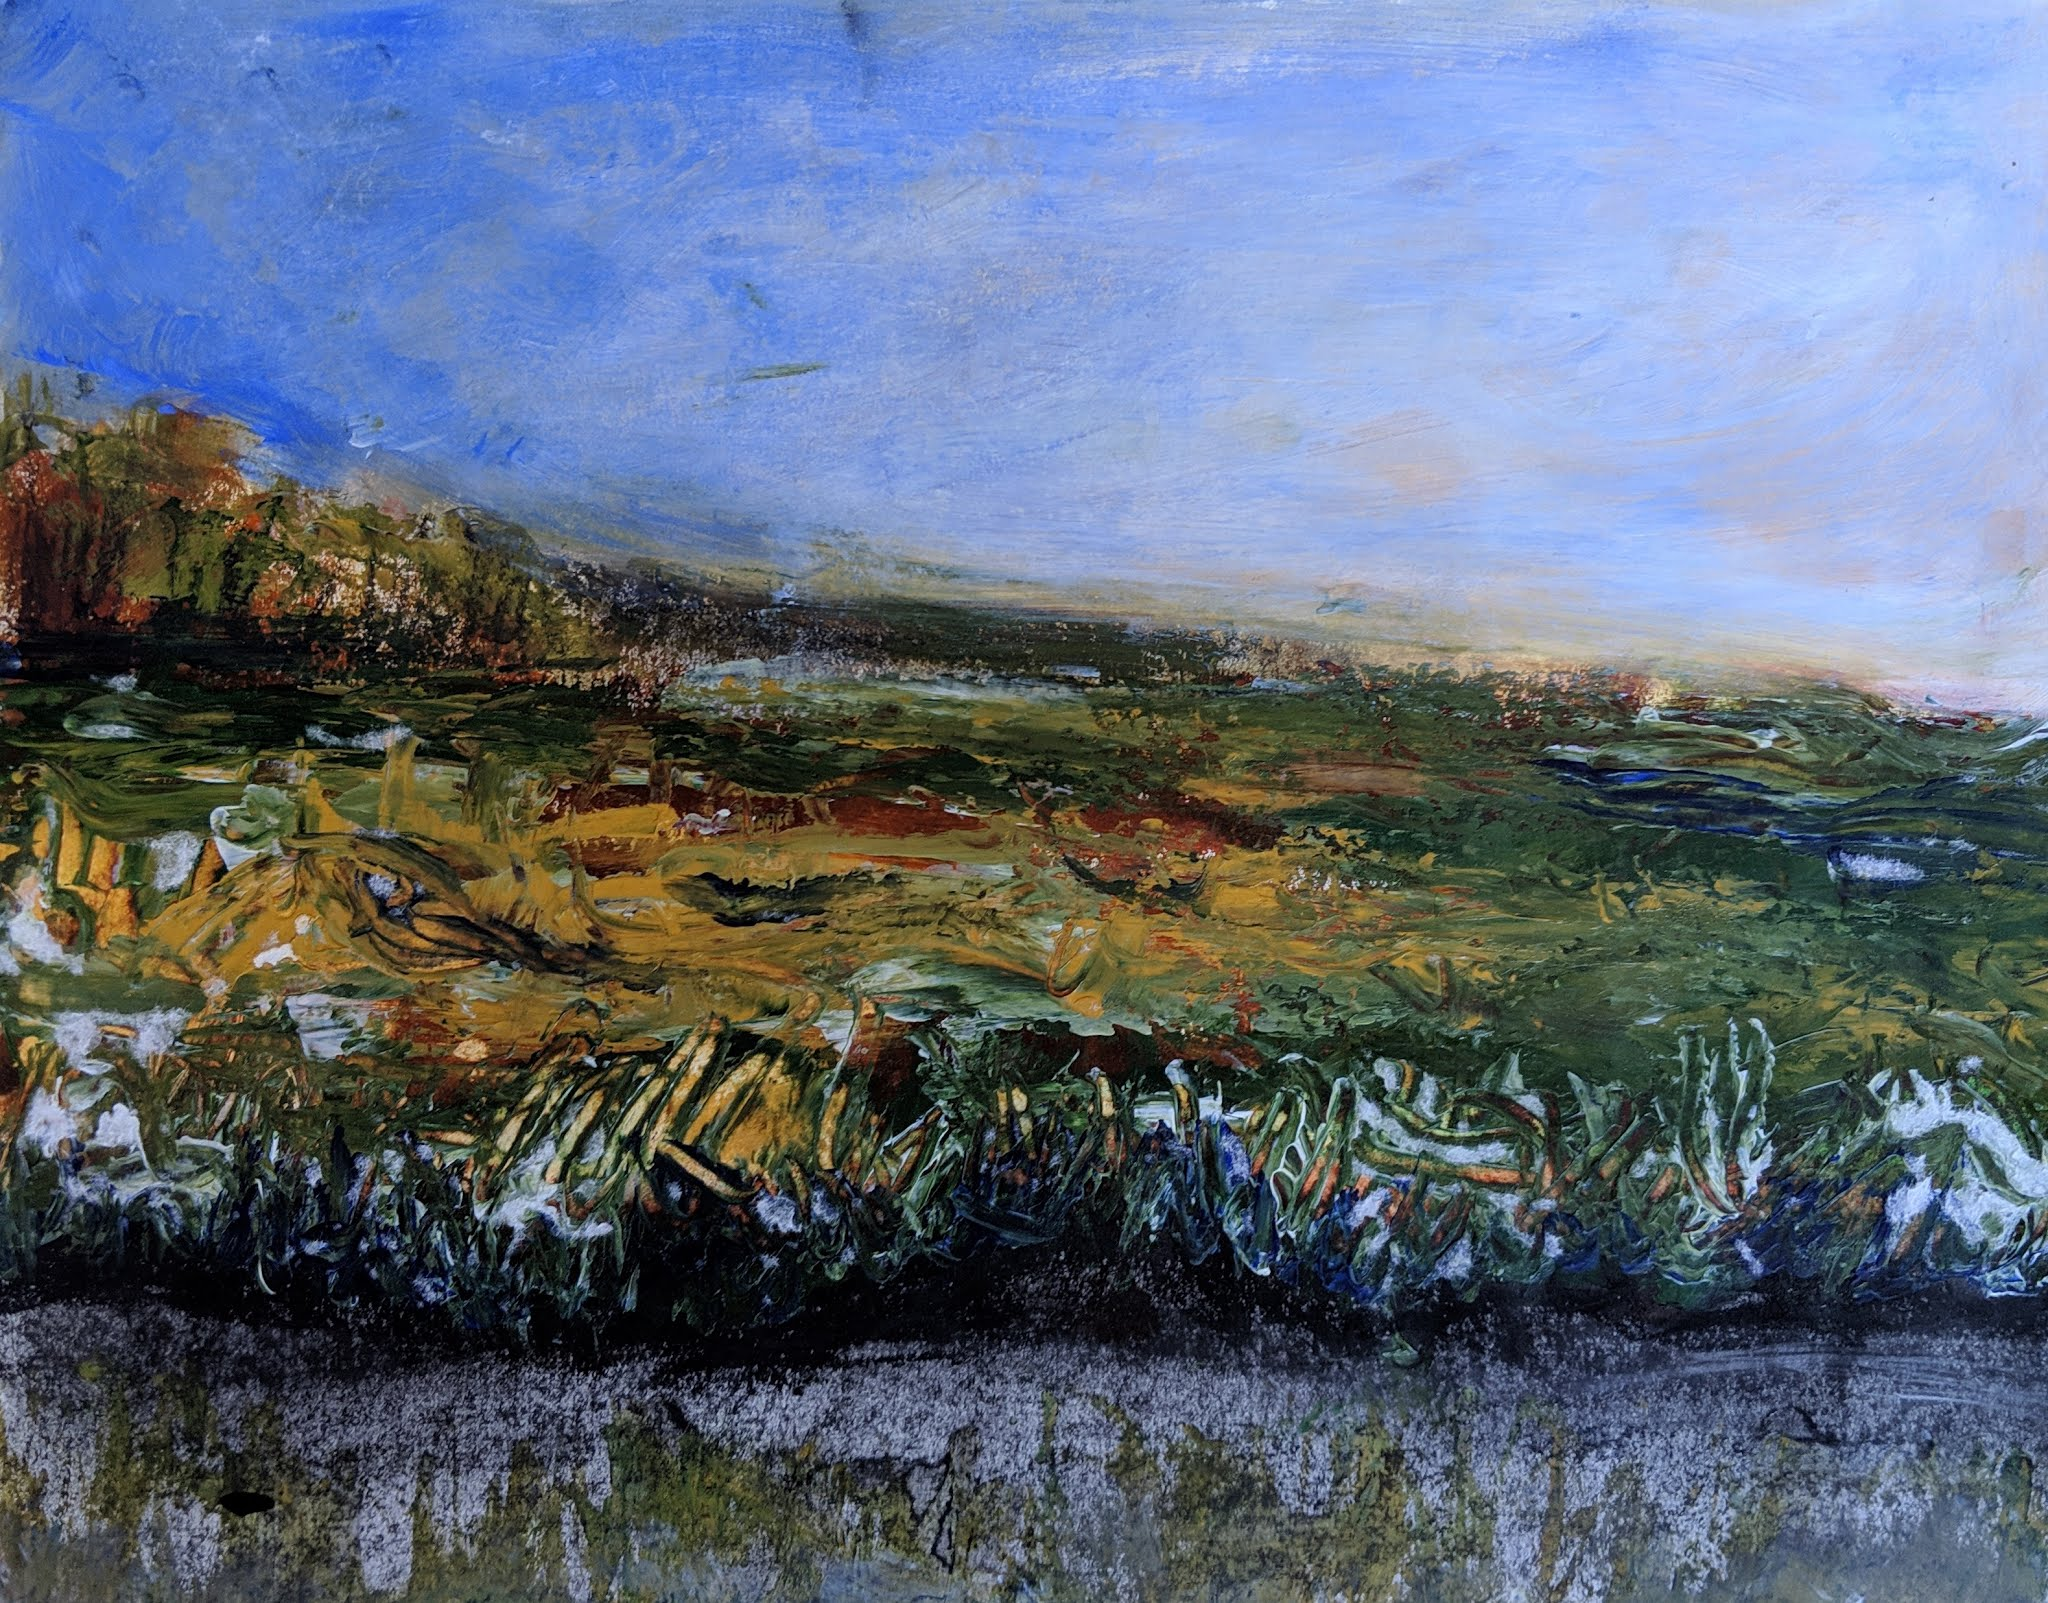 Rachel Carson Wildlife Refuge - Maine  Acrylic, Charcoal on paper | 11 x 14